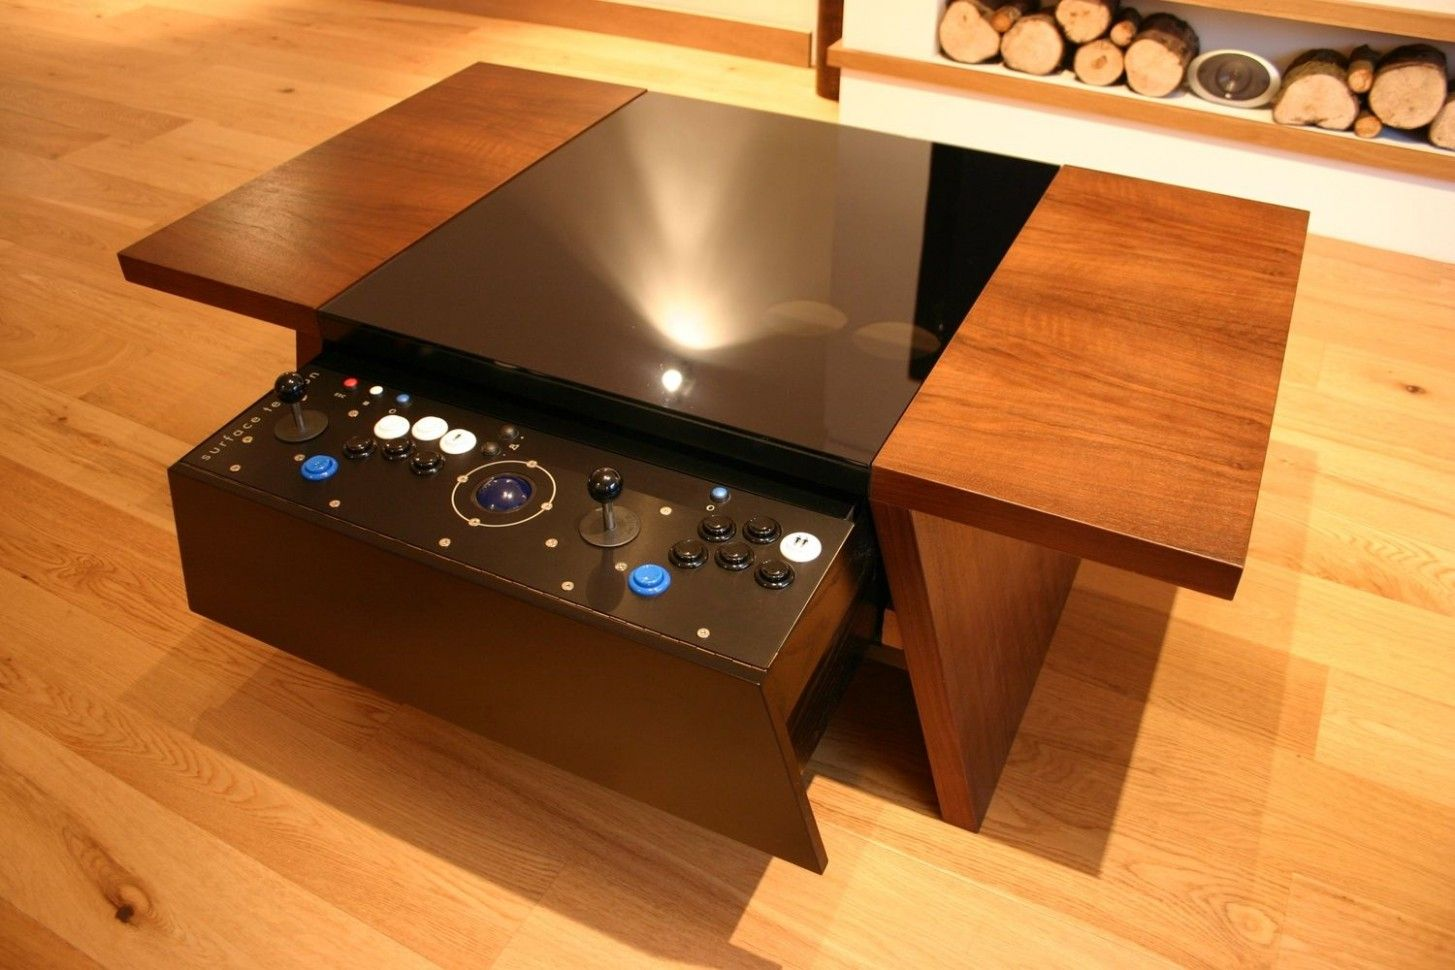 8 Ingenious Ways You Can Do With Coffee Table Under Xbox 8 Arcade Table Coffee Table Arcade Arcade Cabinet [ 970 x 1455 Pixel ]